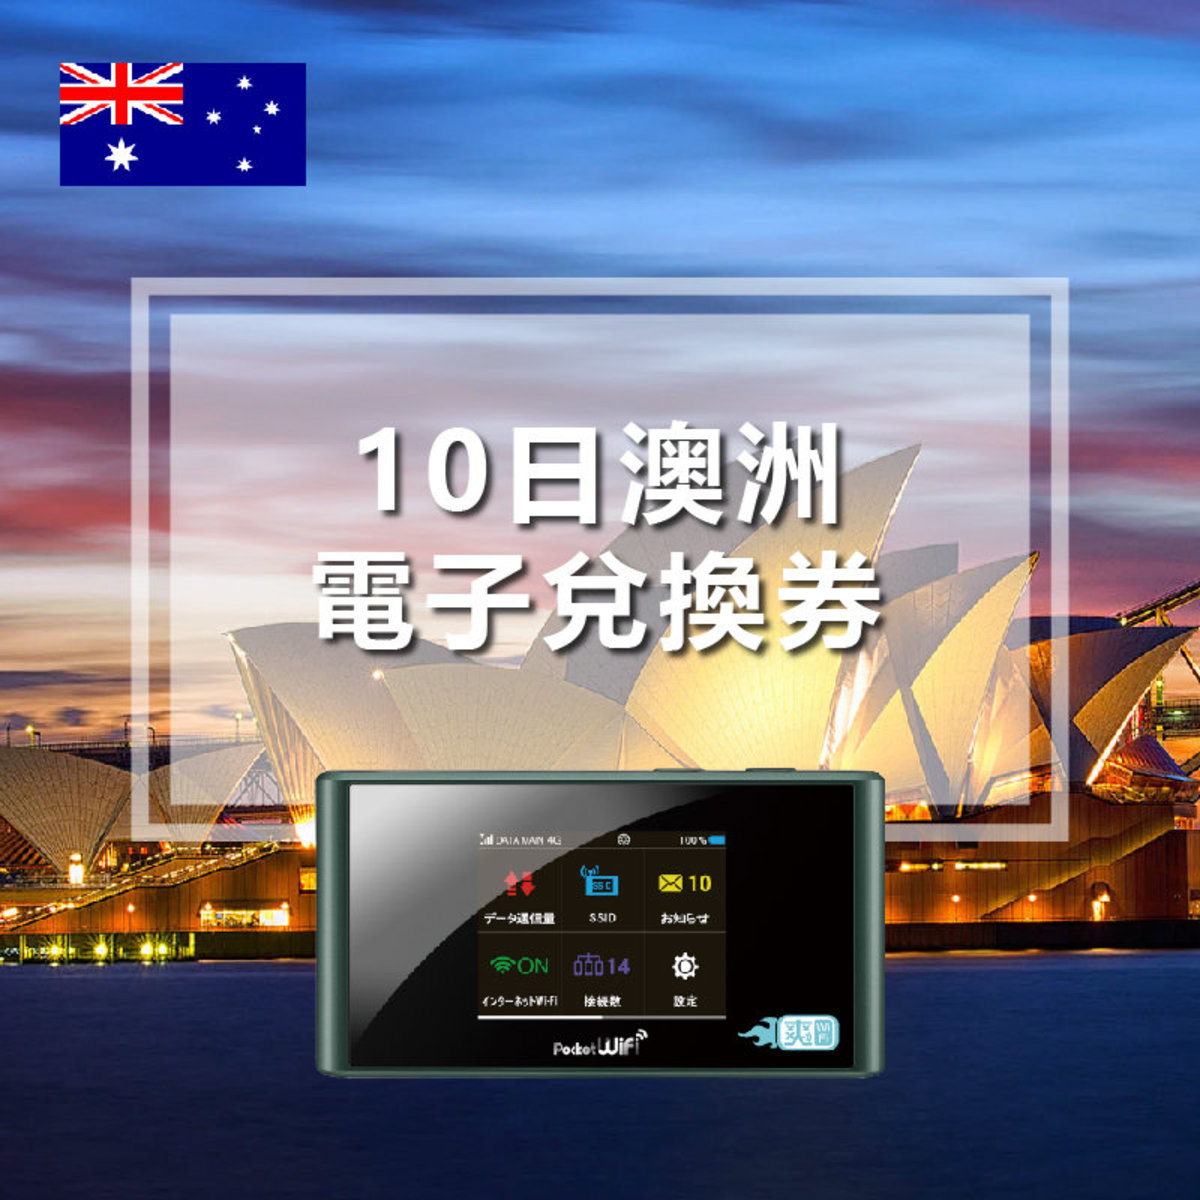 SONG Wifi | 10 days Australia Unlimited Data Unlimited Speed E